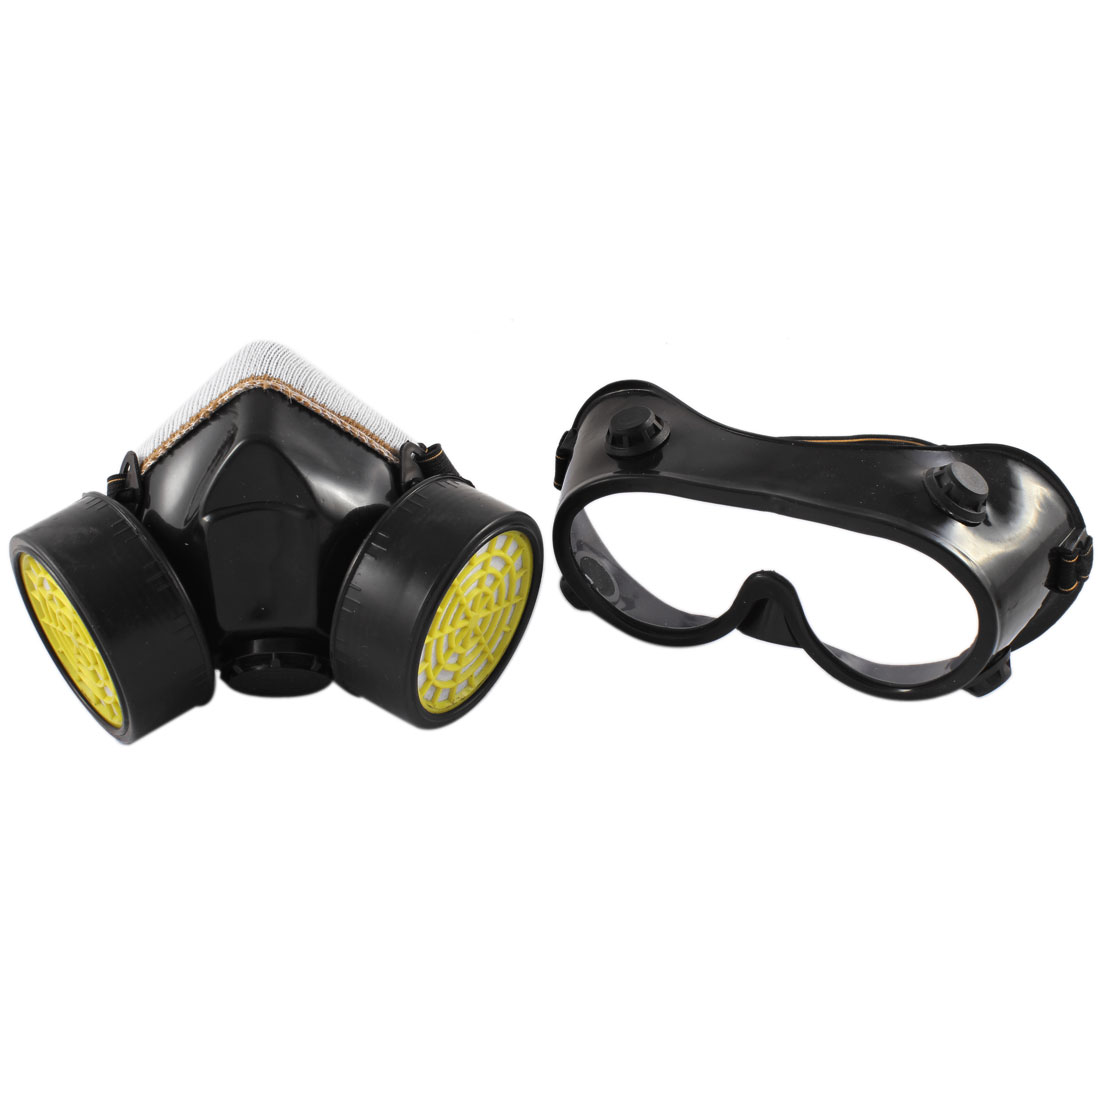 Double Cartridge Dust Proof Respirator Mask Fliter Goggle Set Industrial Safety Equipment